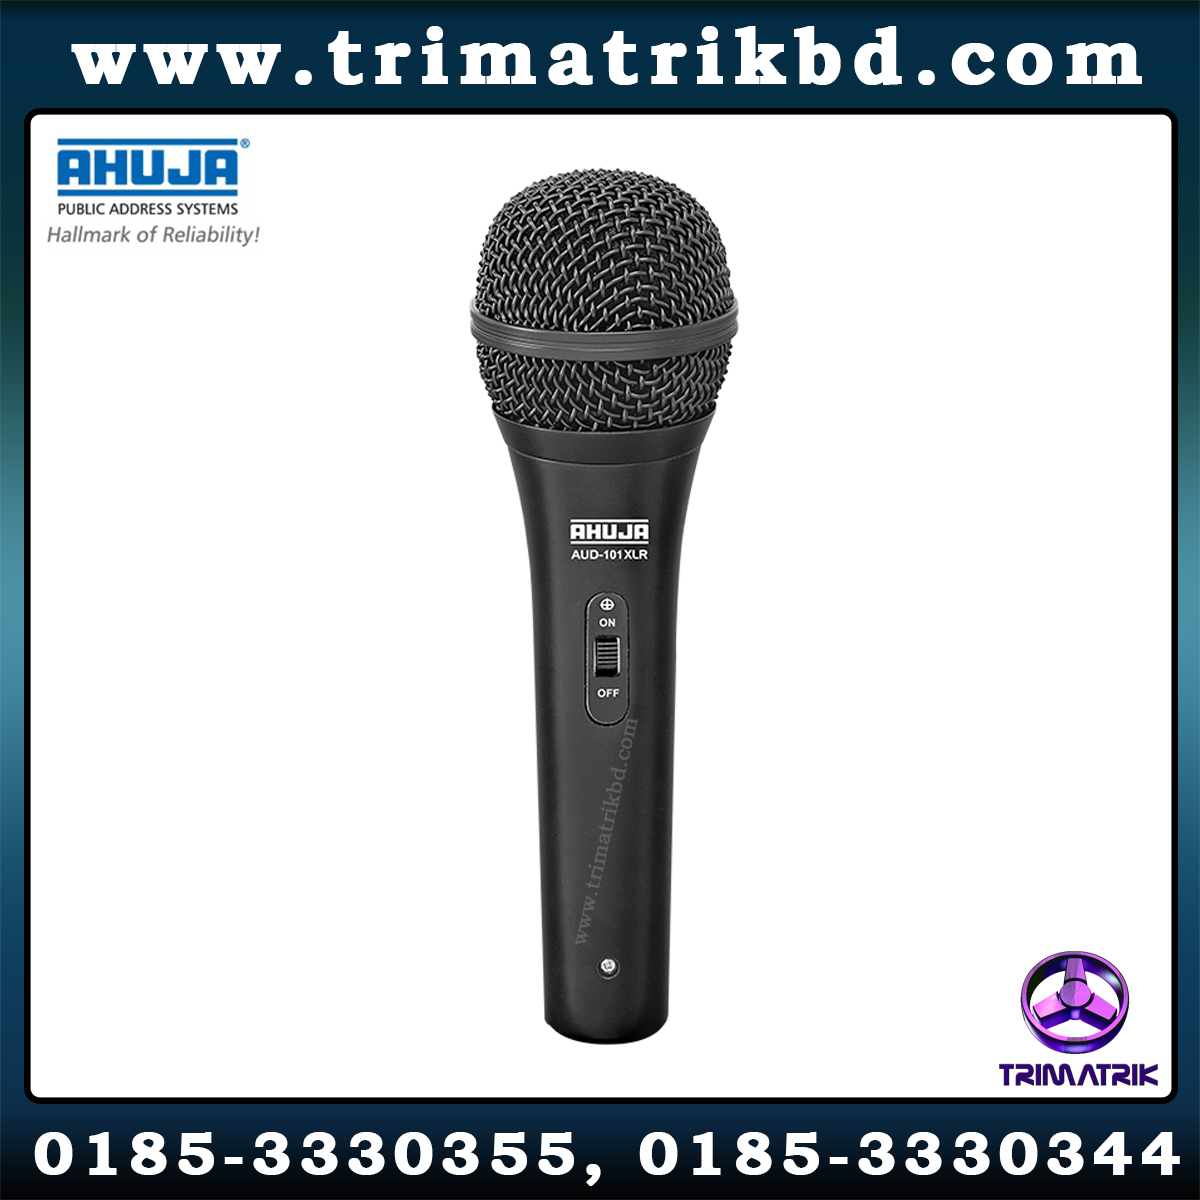 Ahuja AUD-101XLR Price in BD